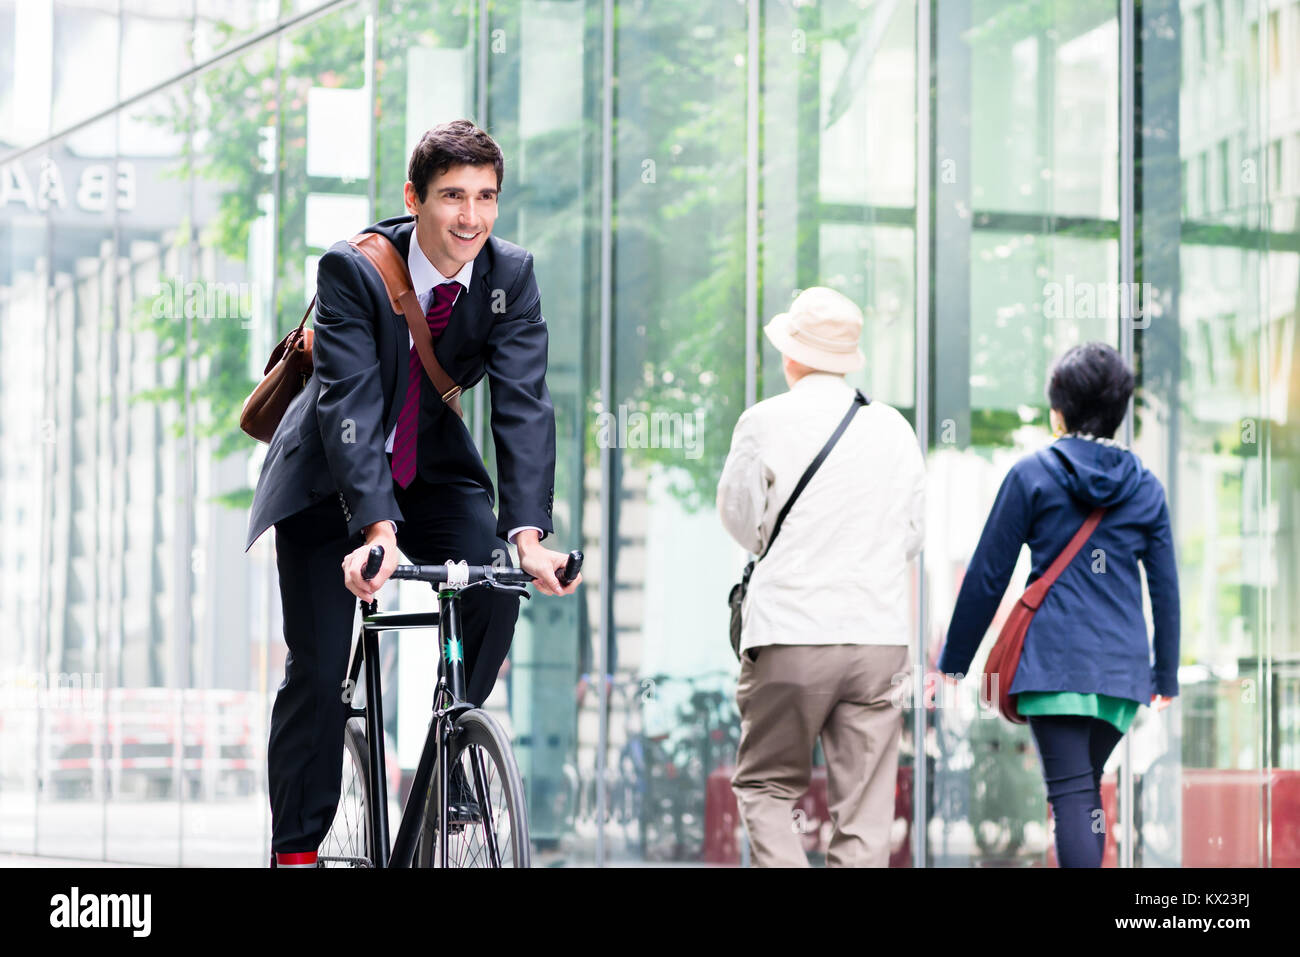 Cheerful young employee riding an utility bicycle in Berlin - Stock Image